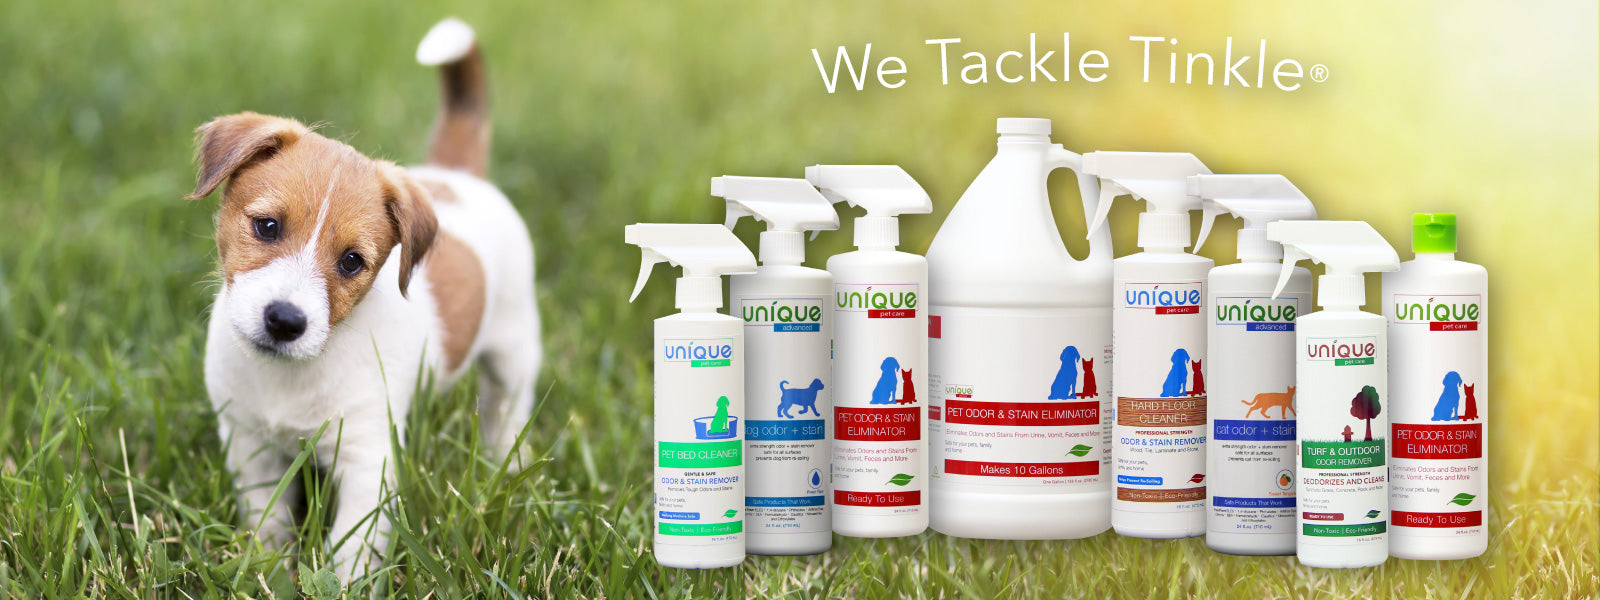 We tackle tinkle - Unique Pet Care